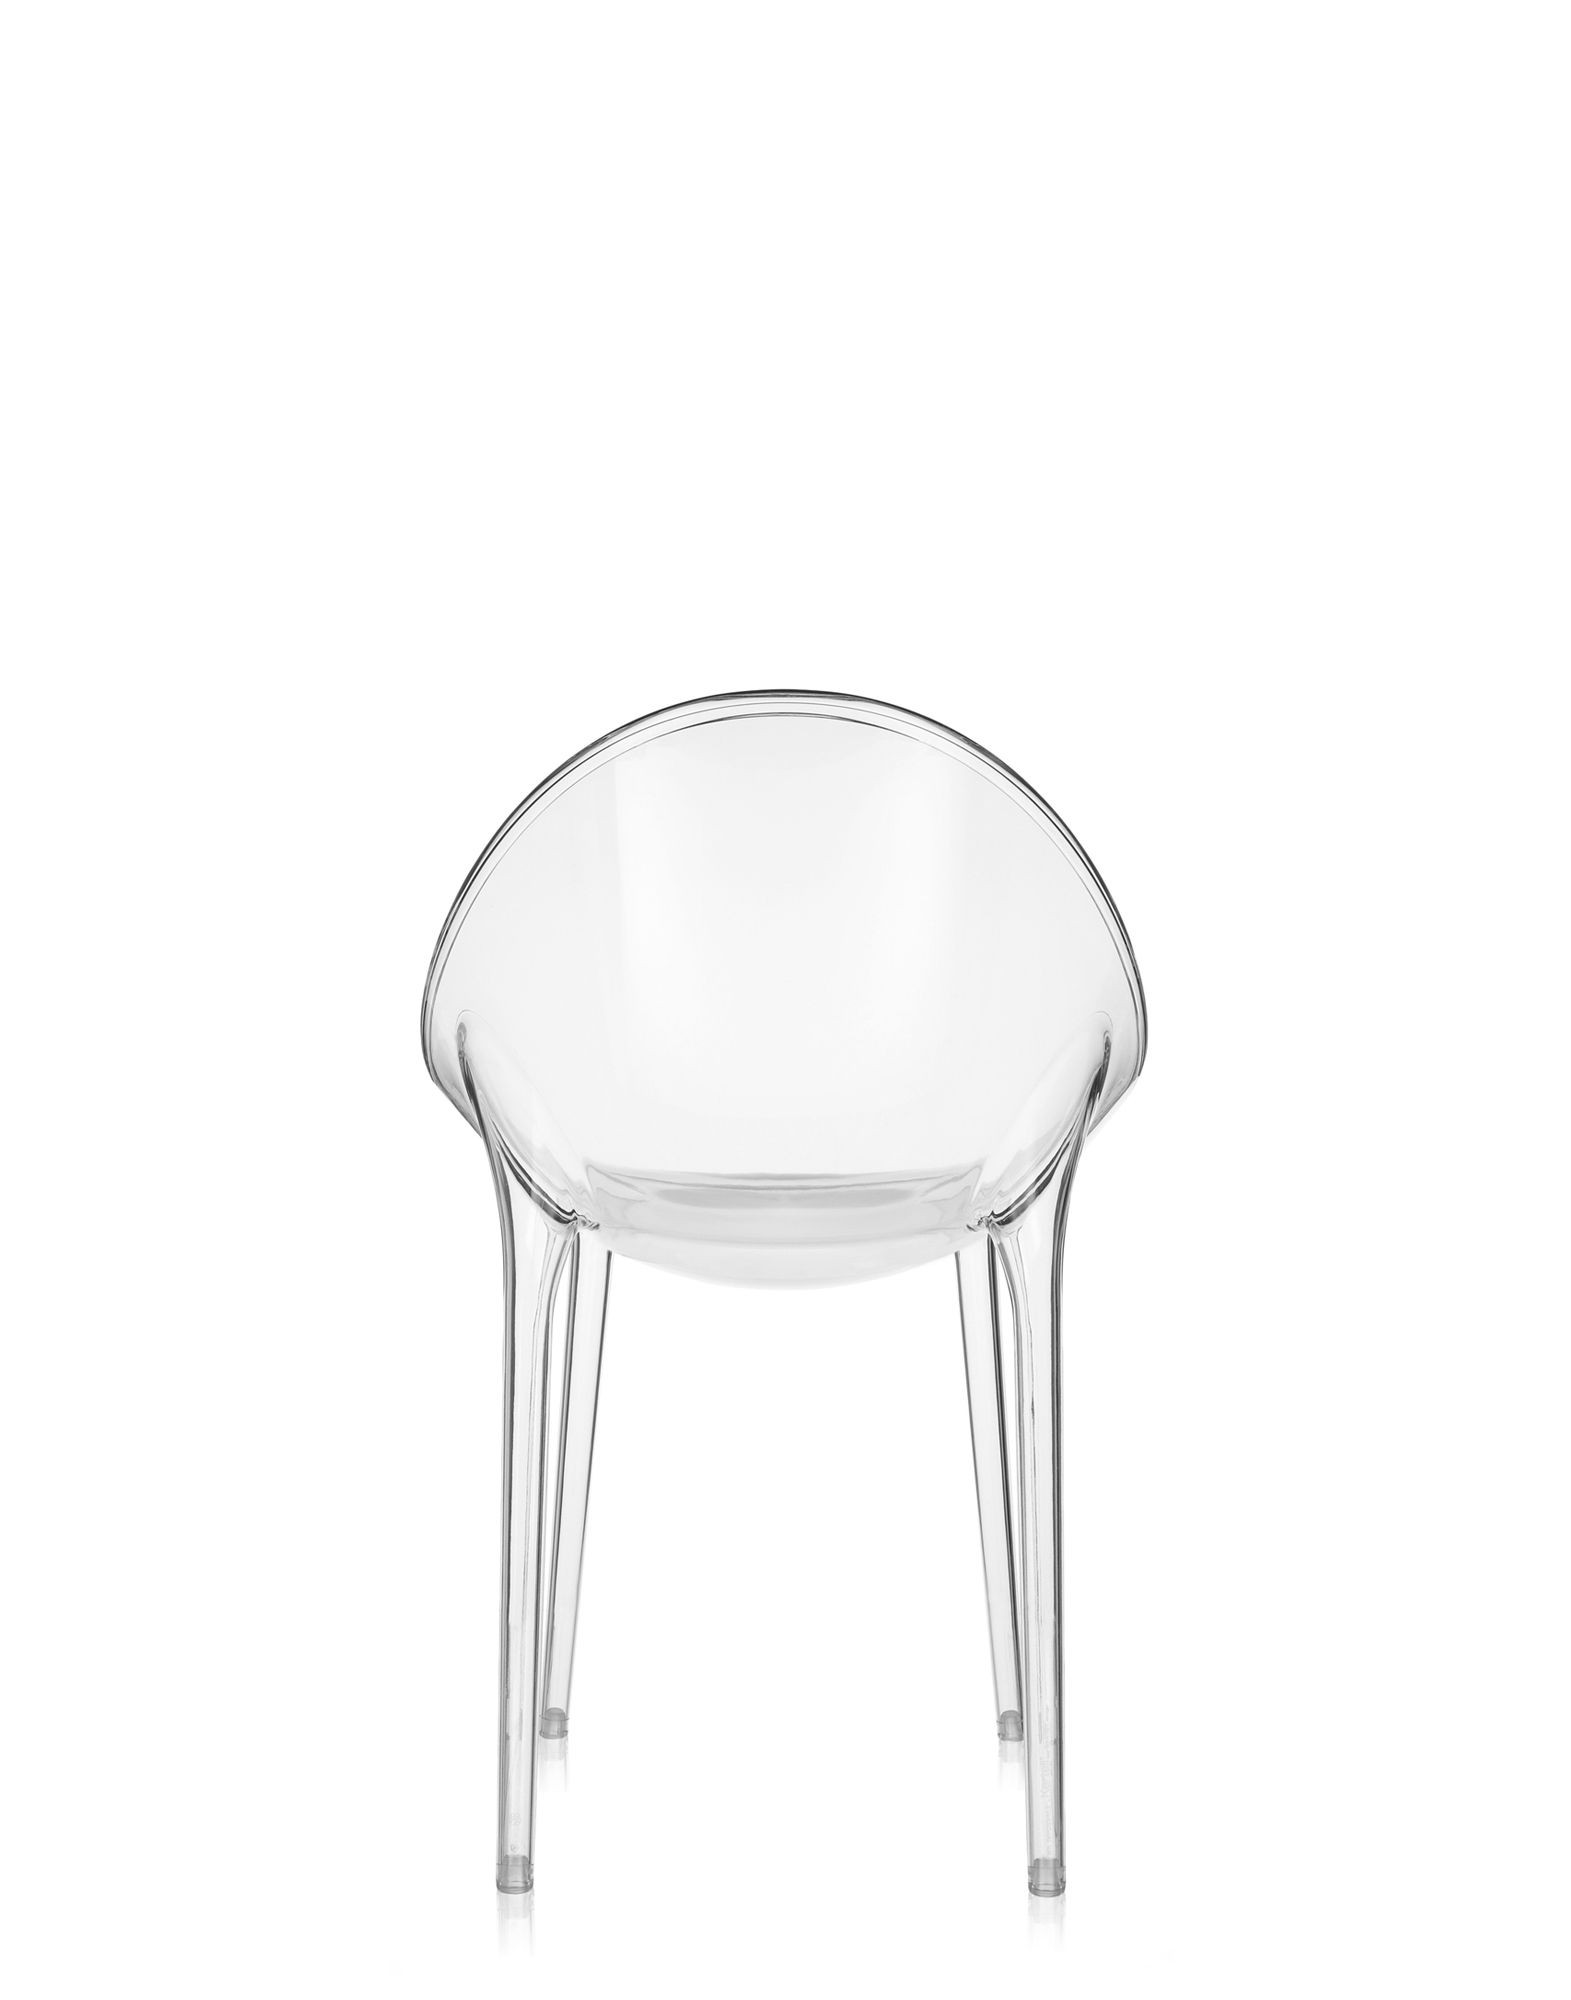 Best Sedie Tipo Kartell Images - Skilifts.us - skilifts.us